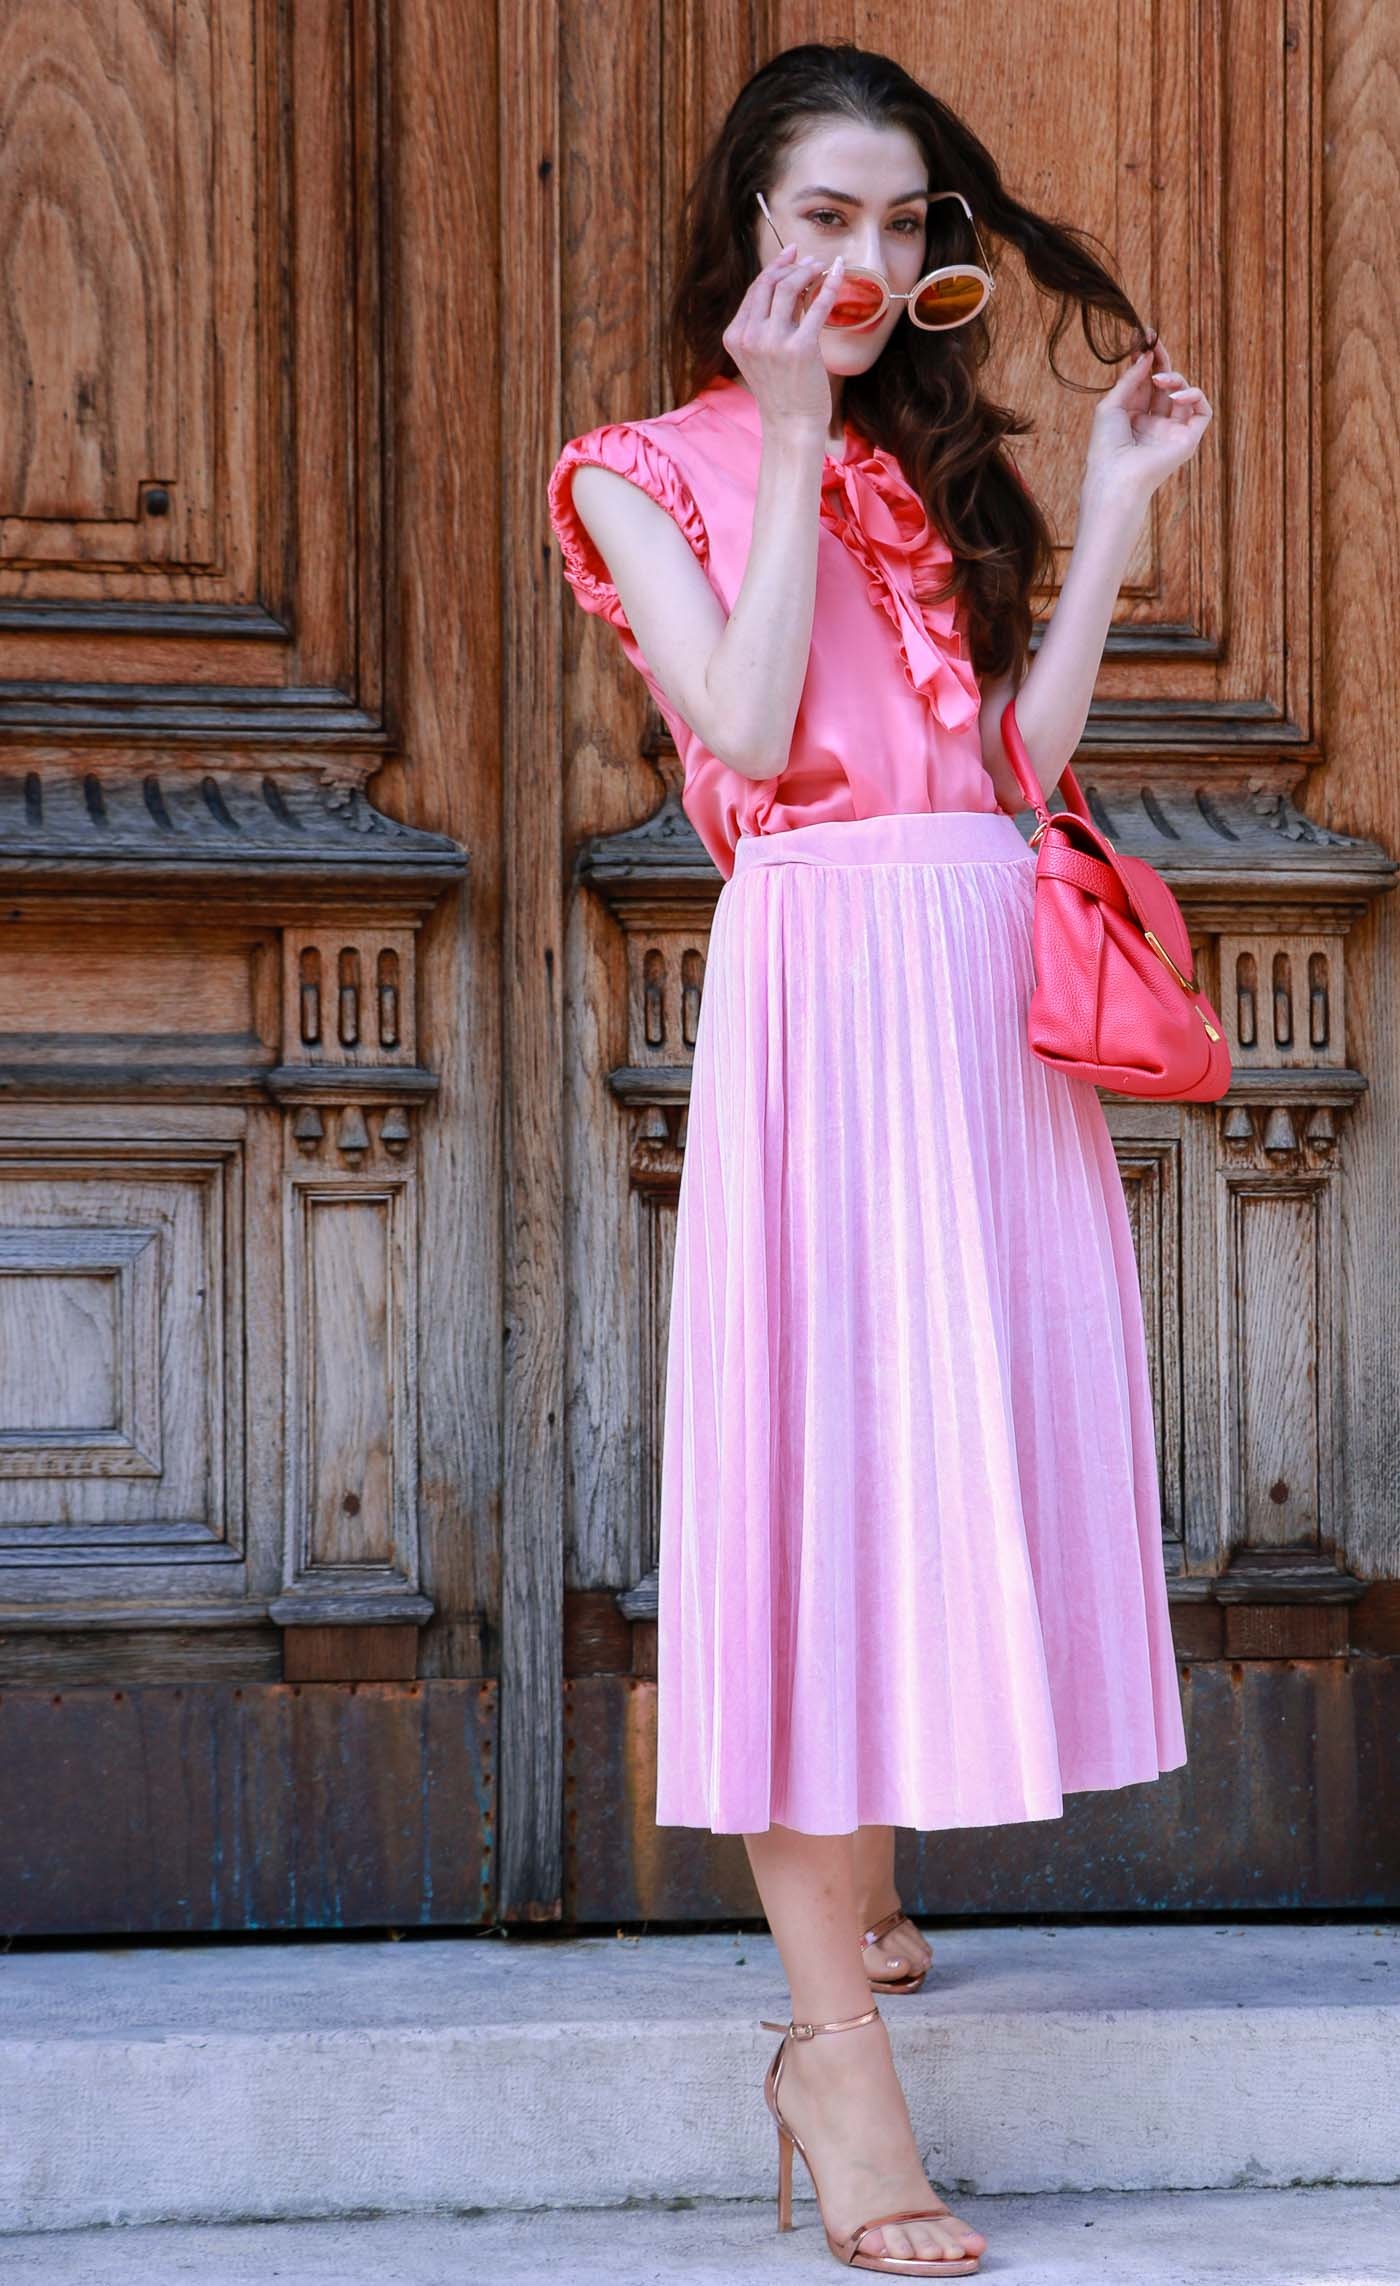 Fashion Blogger Veronika Lipar of Brunette from Wall Street wearing round pink sunglasses from Sunday Somewhere, pink pleated midi skirt, pink top, hot pink top handle bag and metallic rose gold sandals while standing at the door